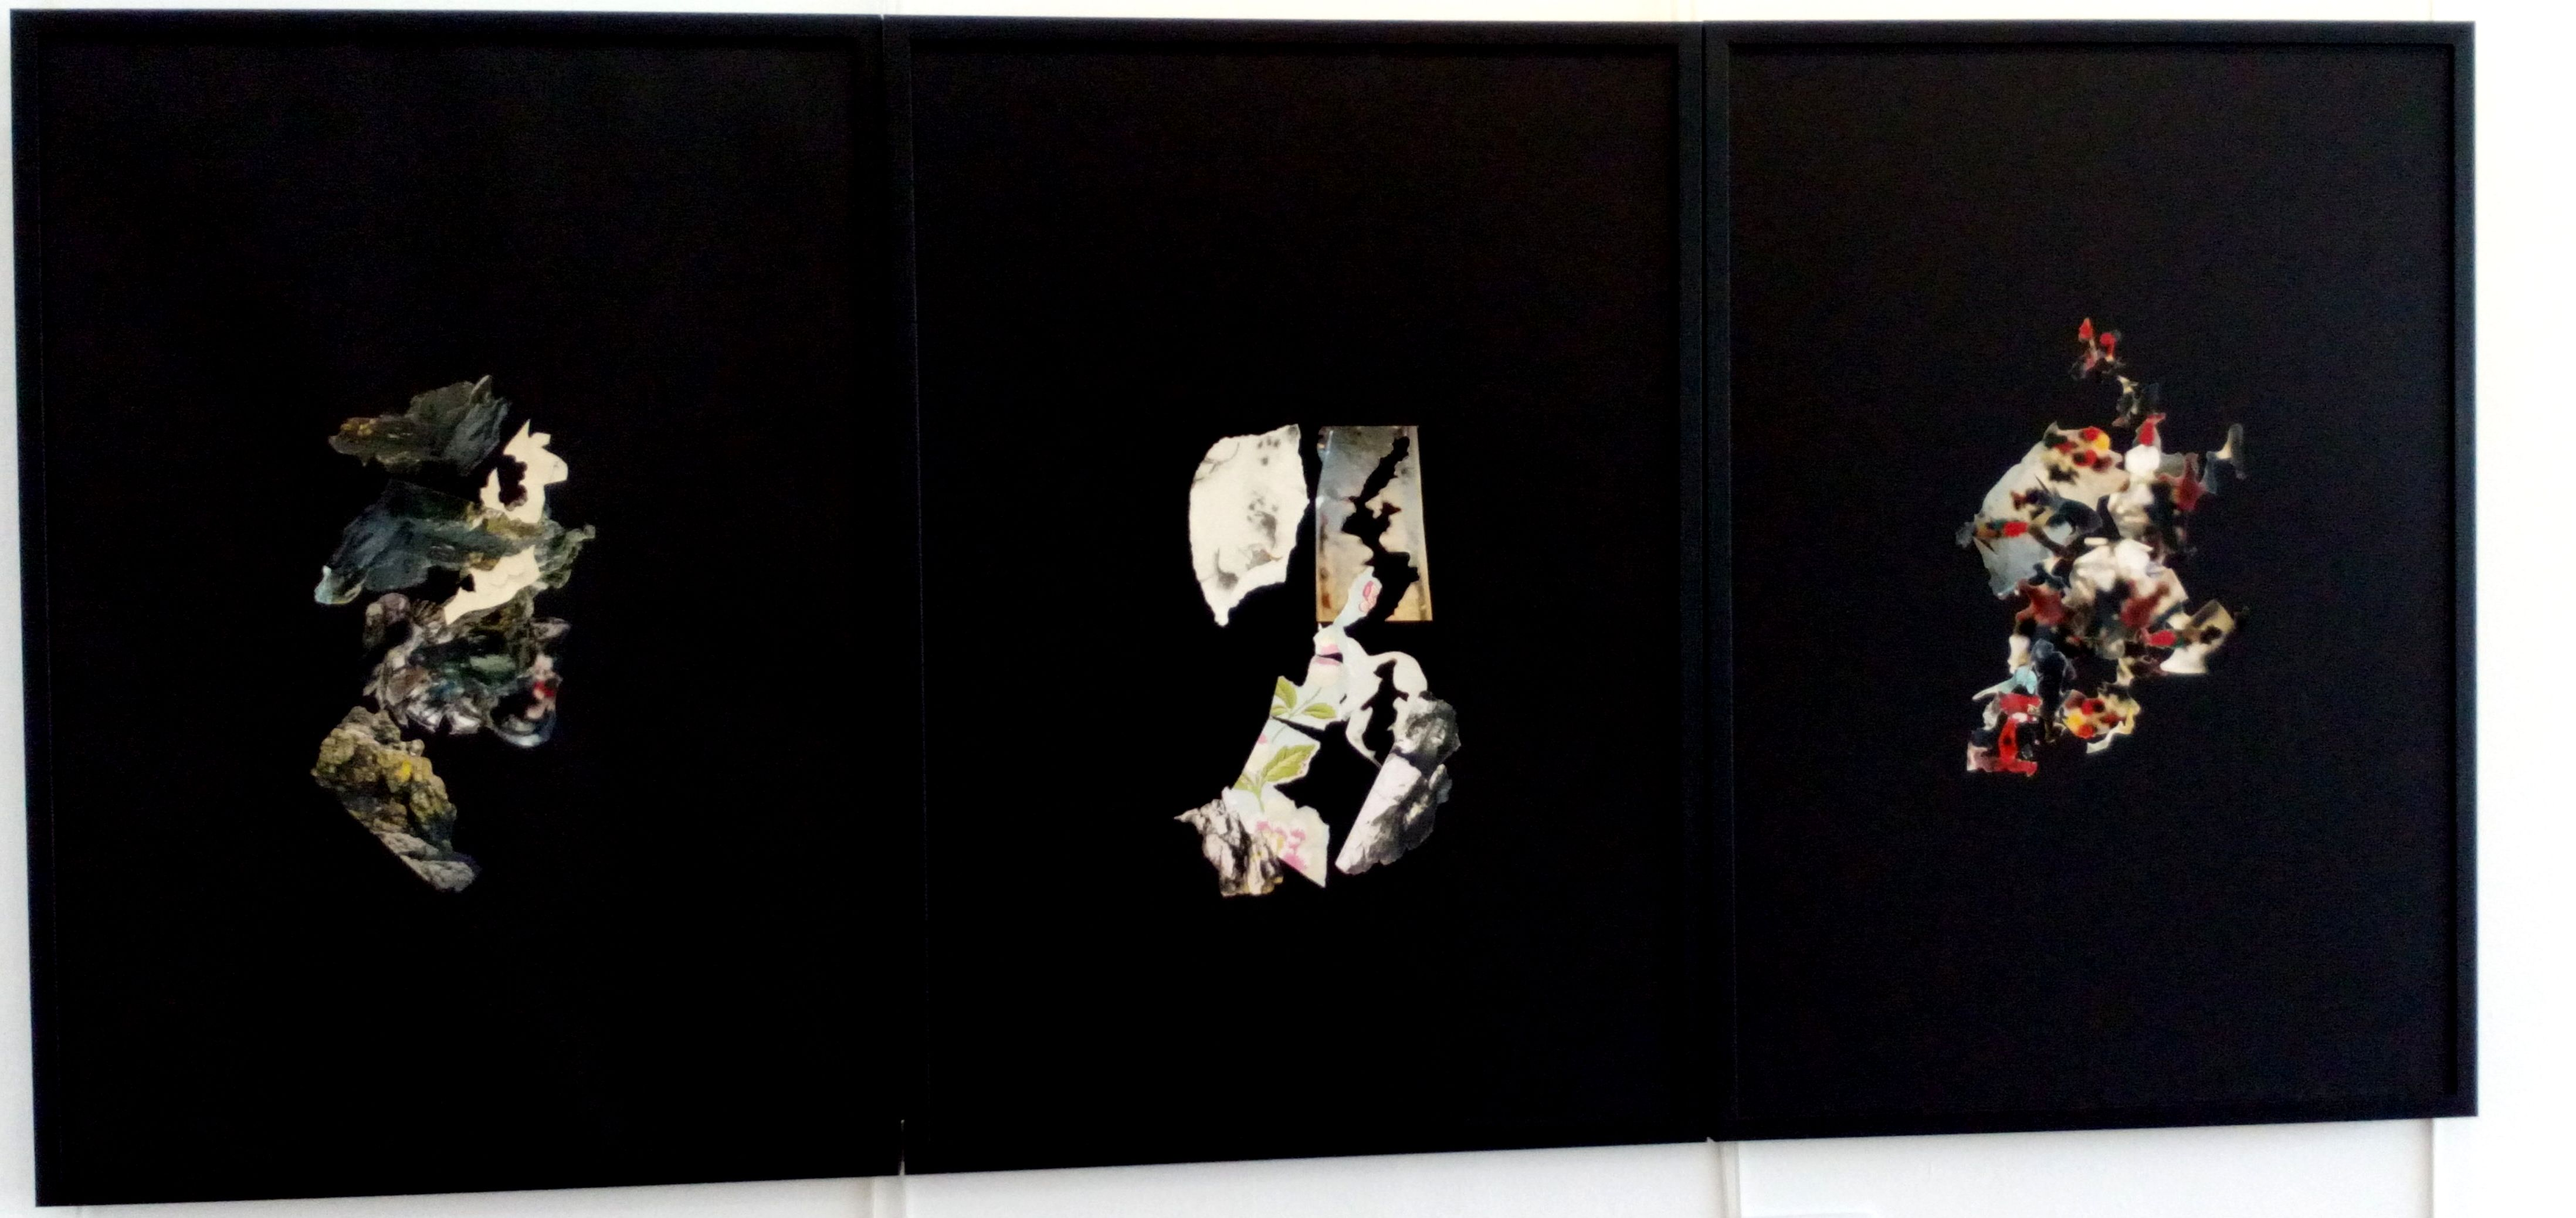 Photographic fragments. Collage on mount board. Trilogy